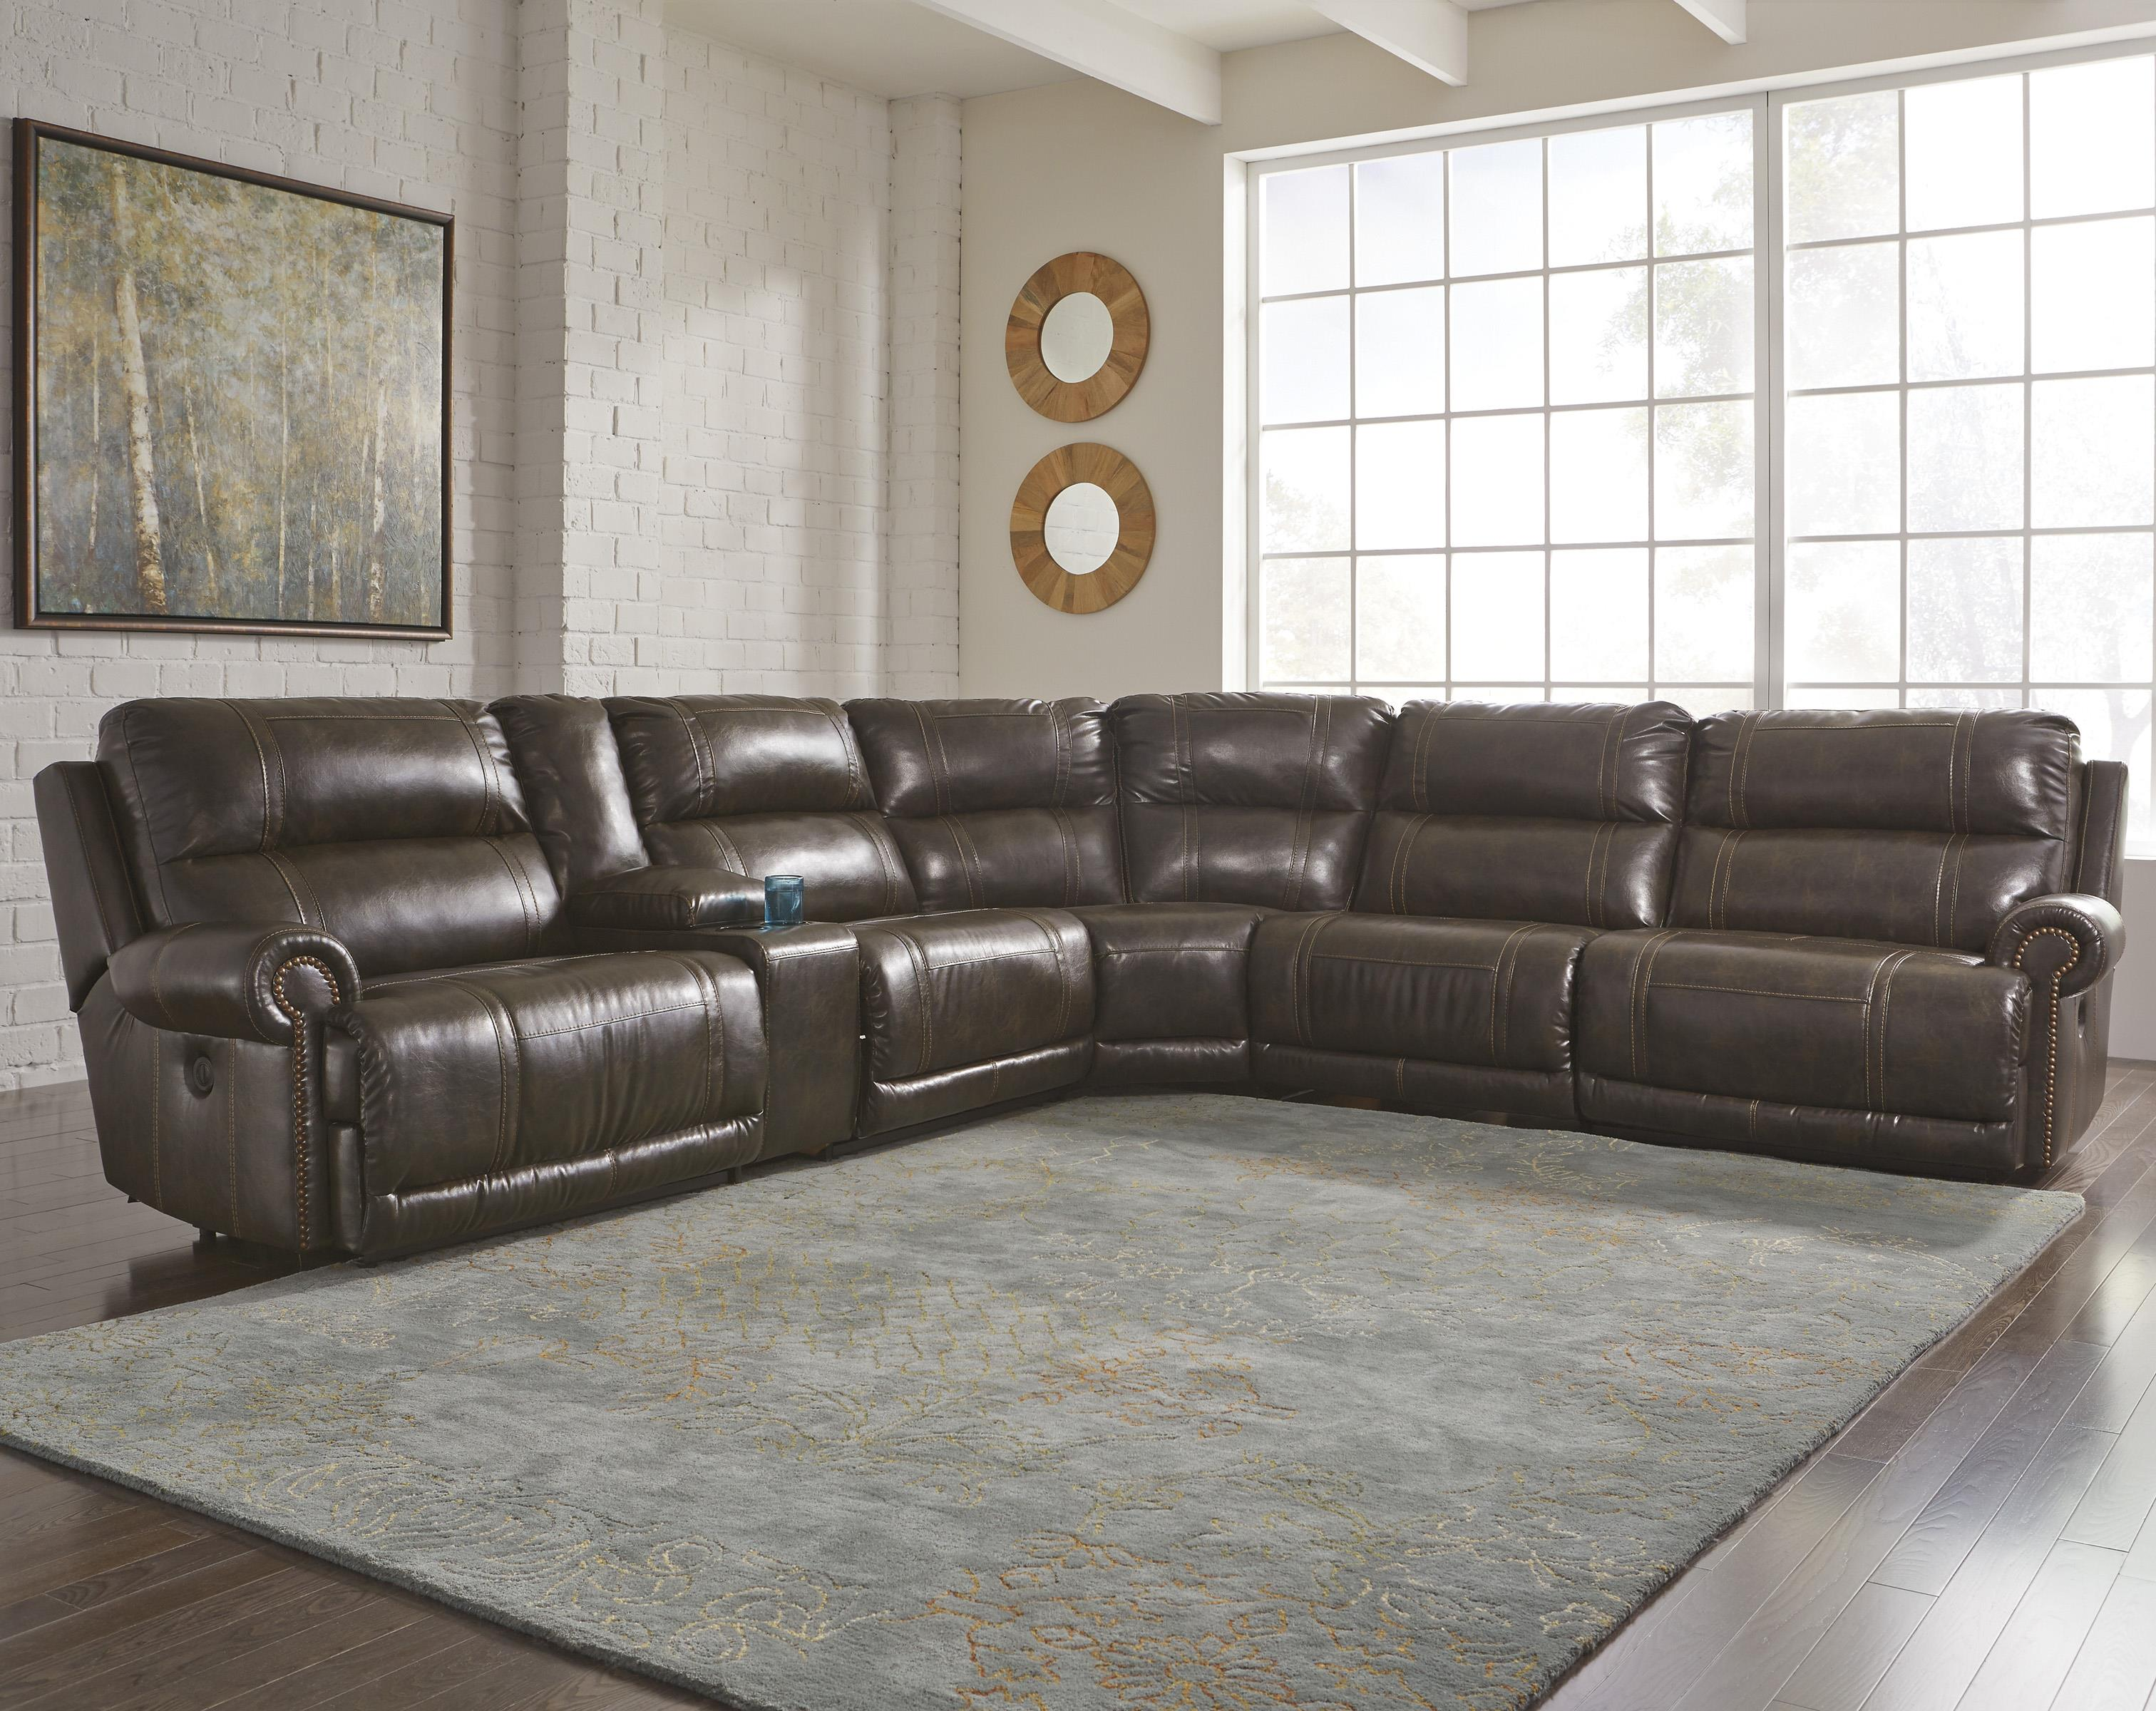 6 Piece Reclining Sectional with Storage Console & Armless